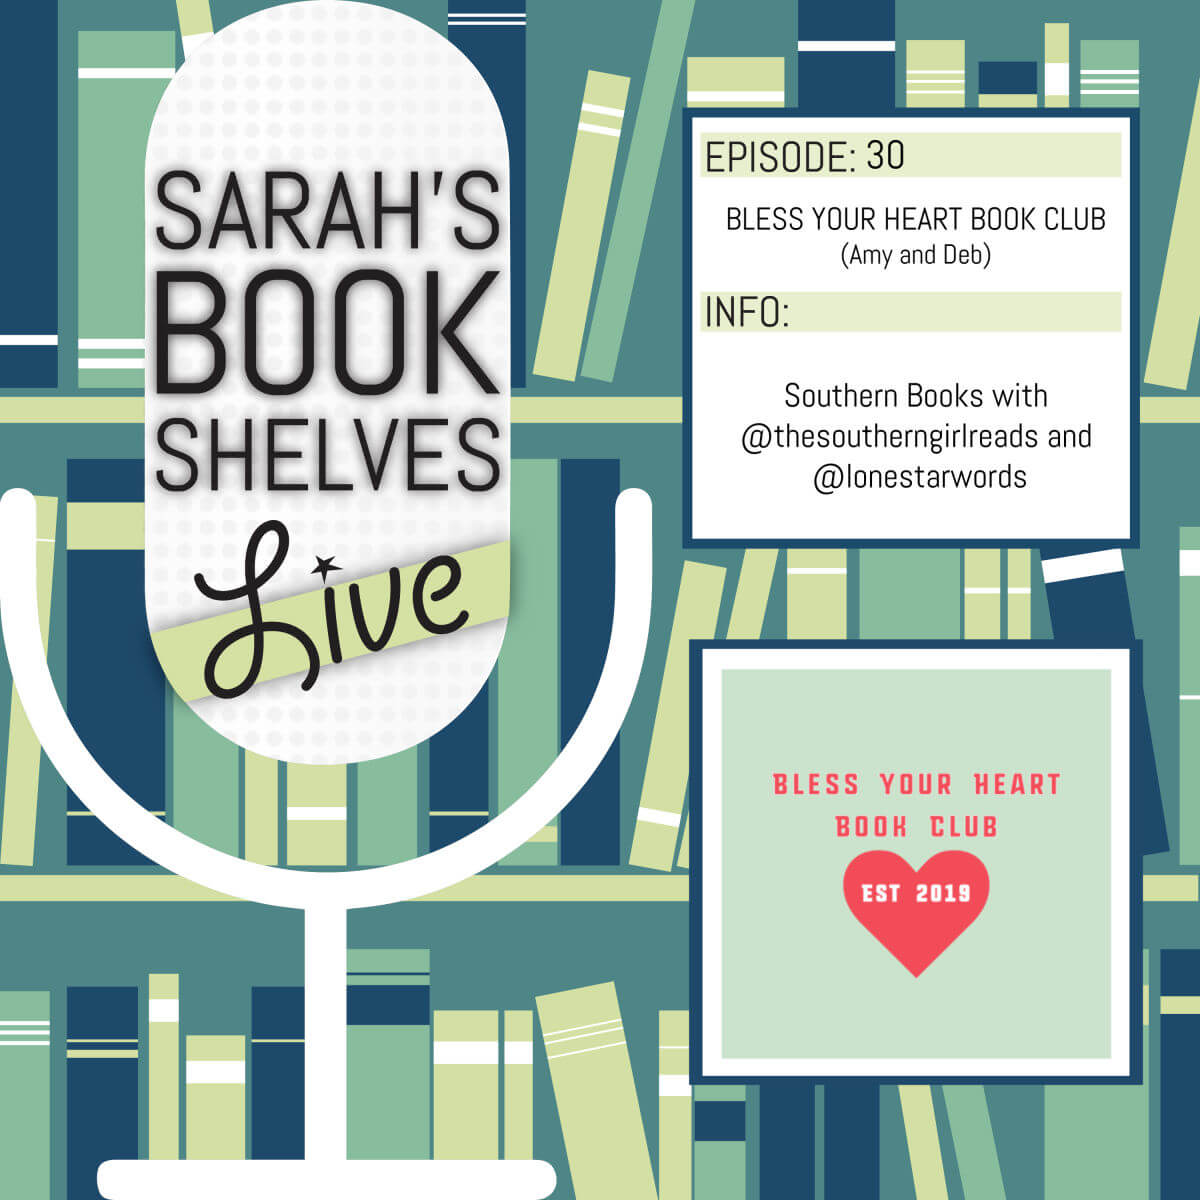 Southern books with bless your heart book club